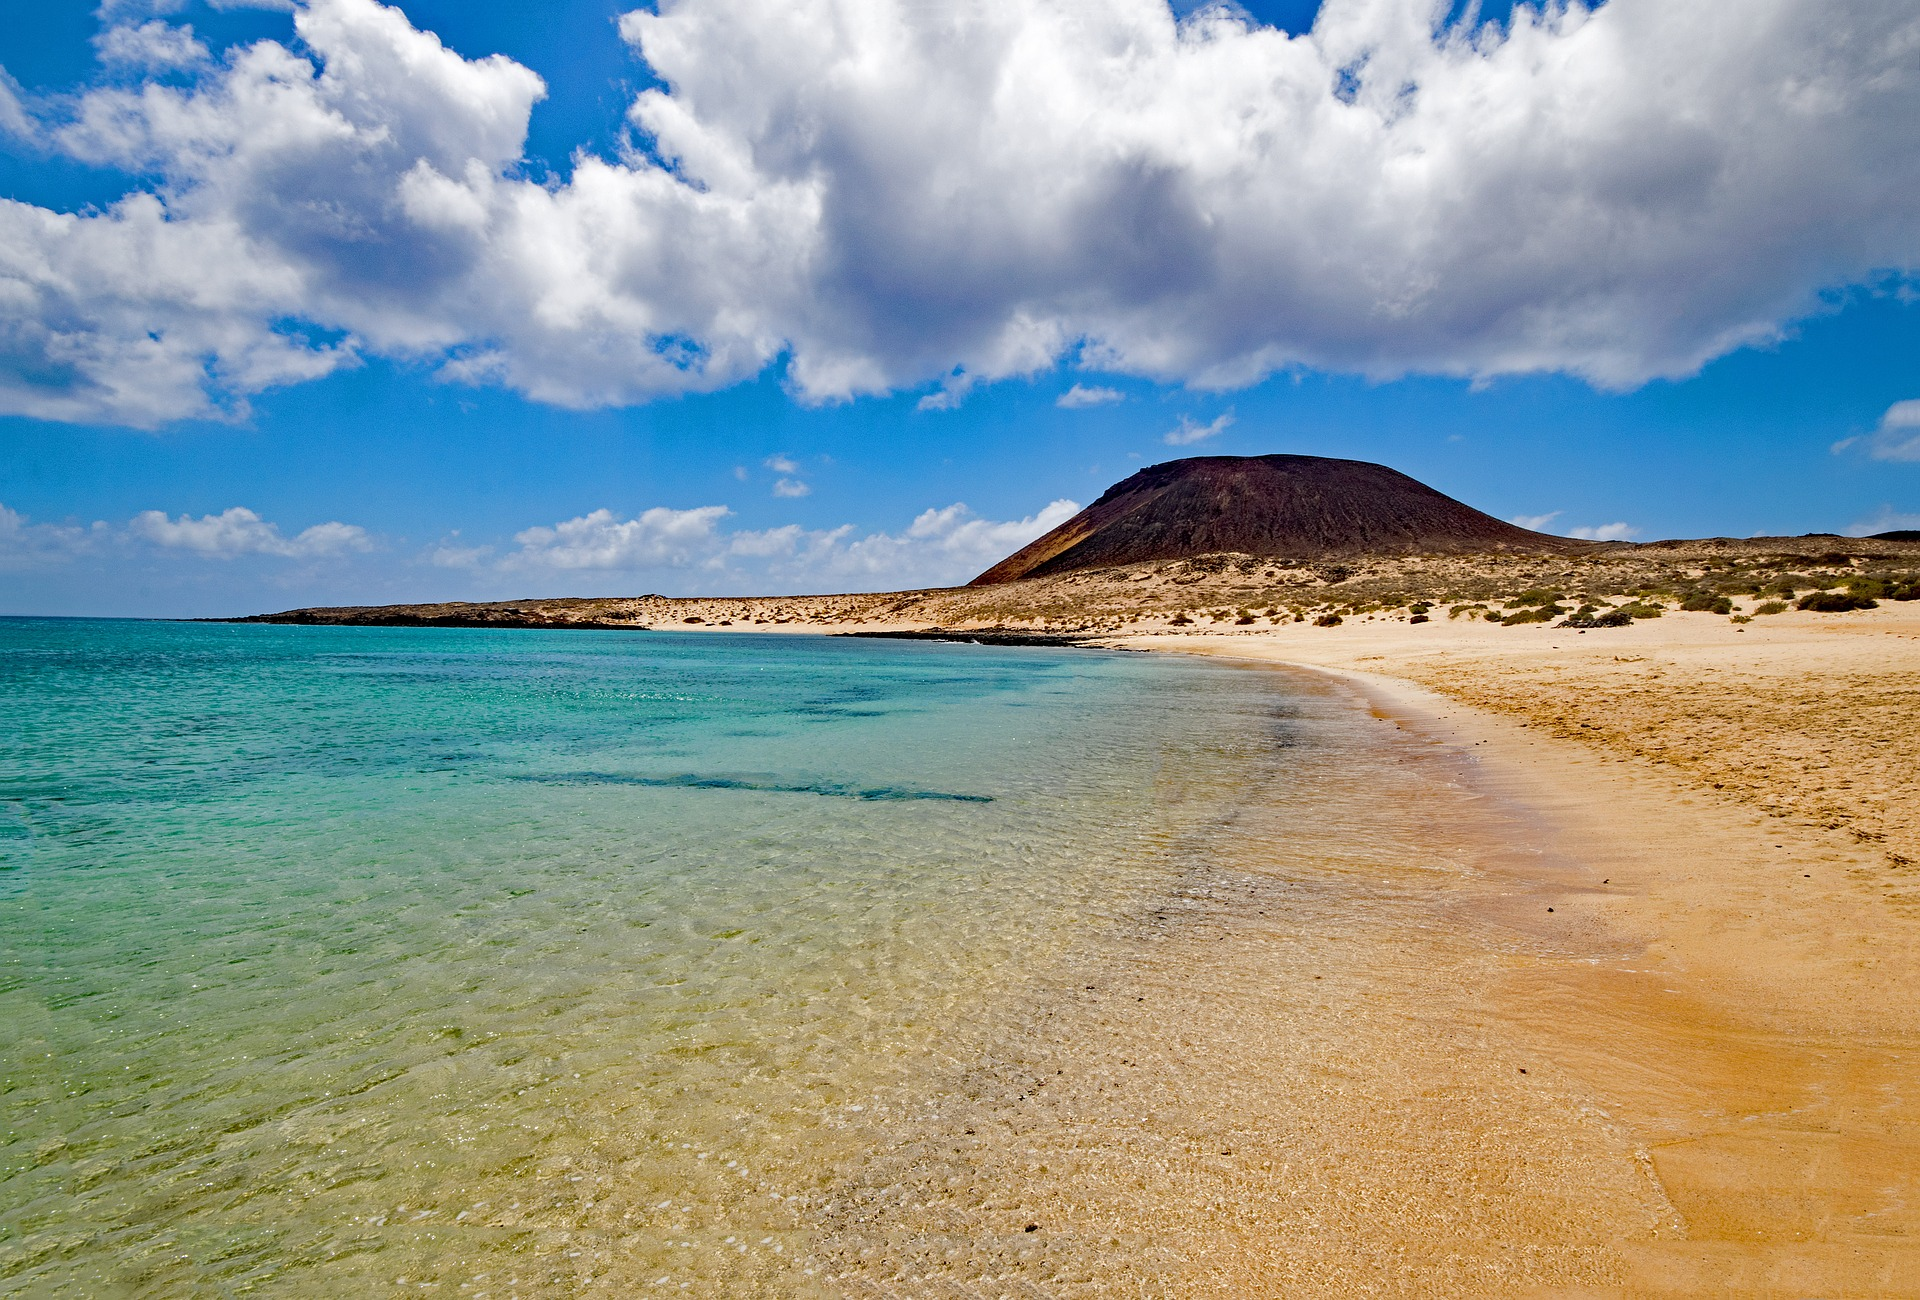 Playa Francesca, La Graciosa